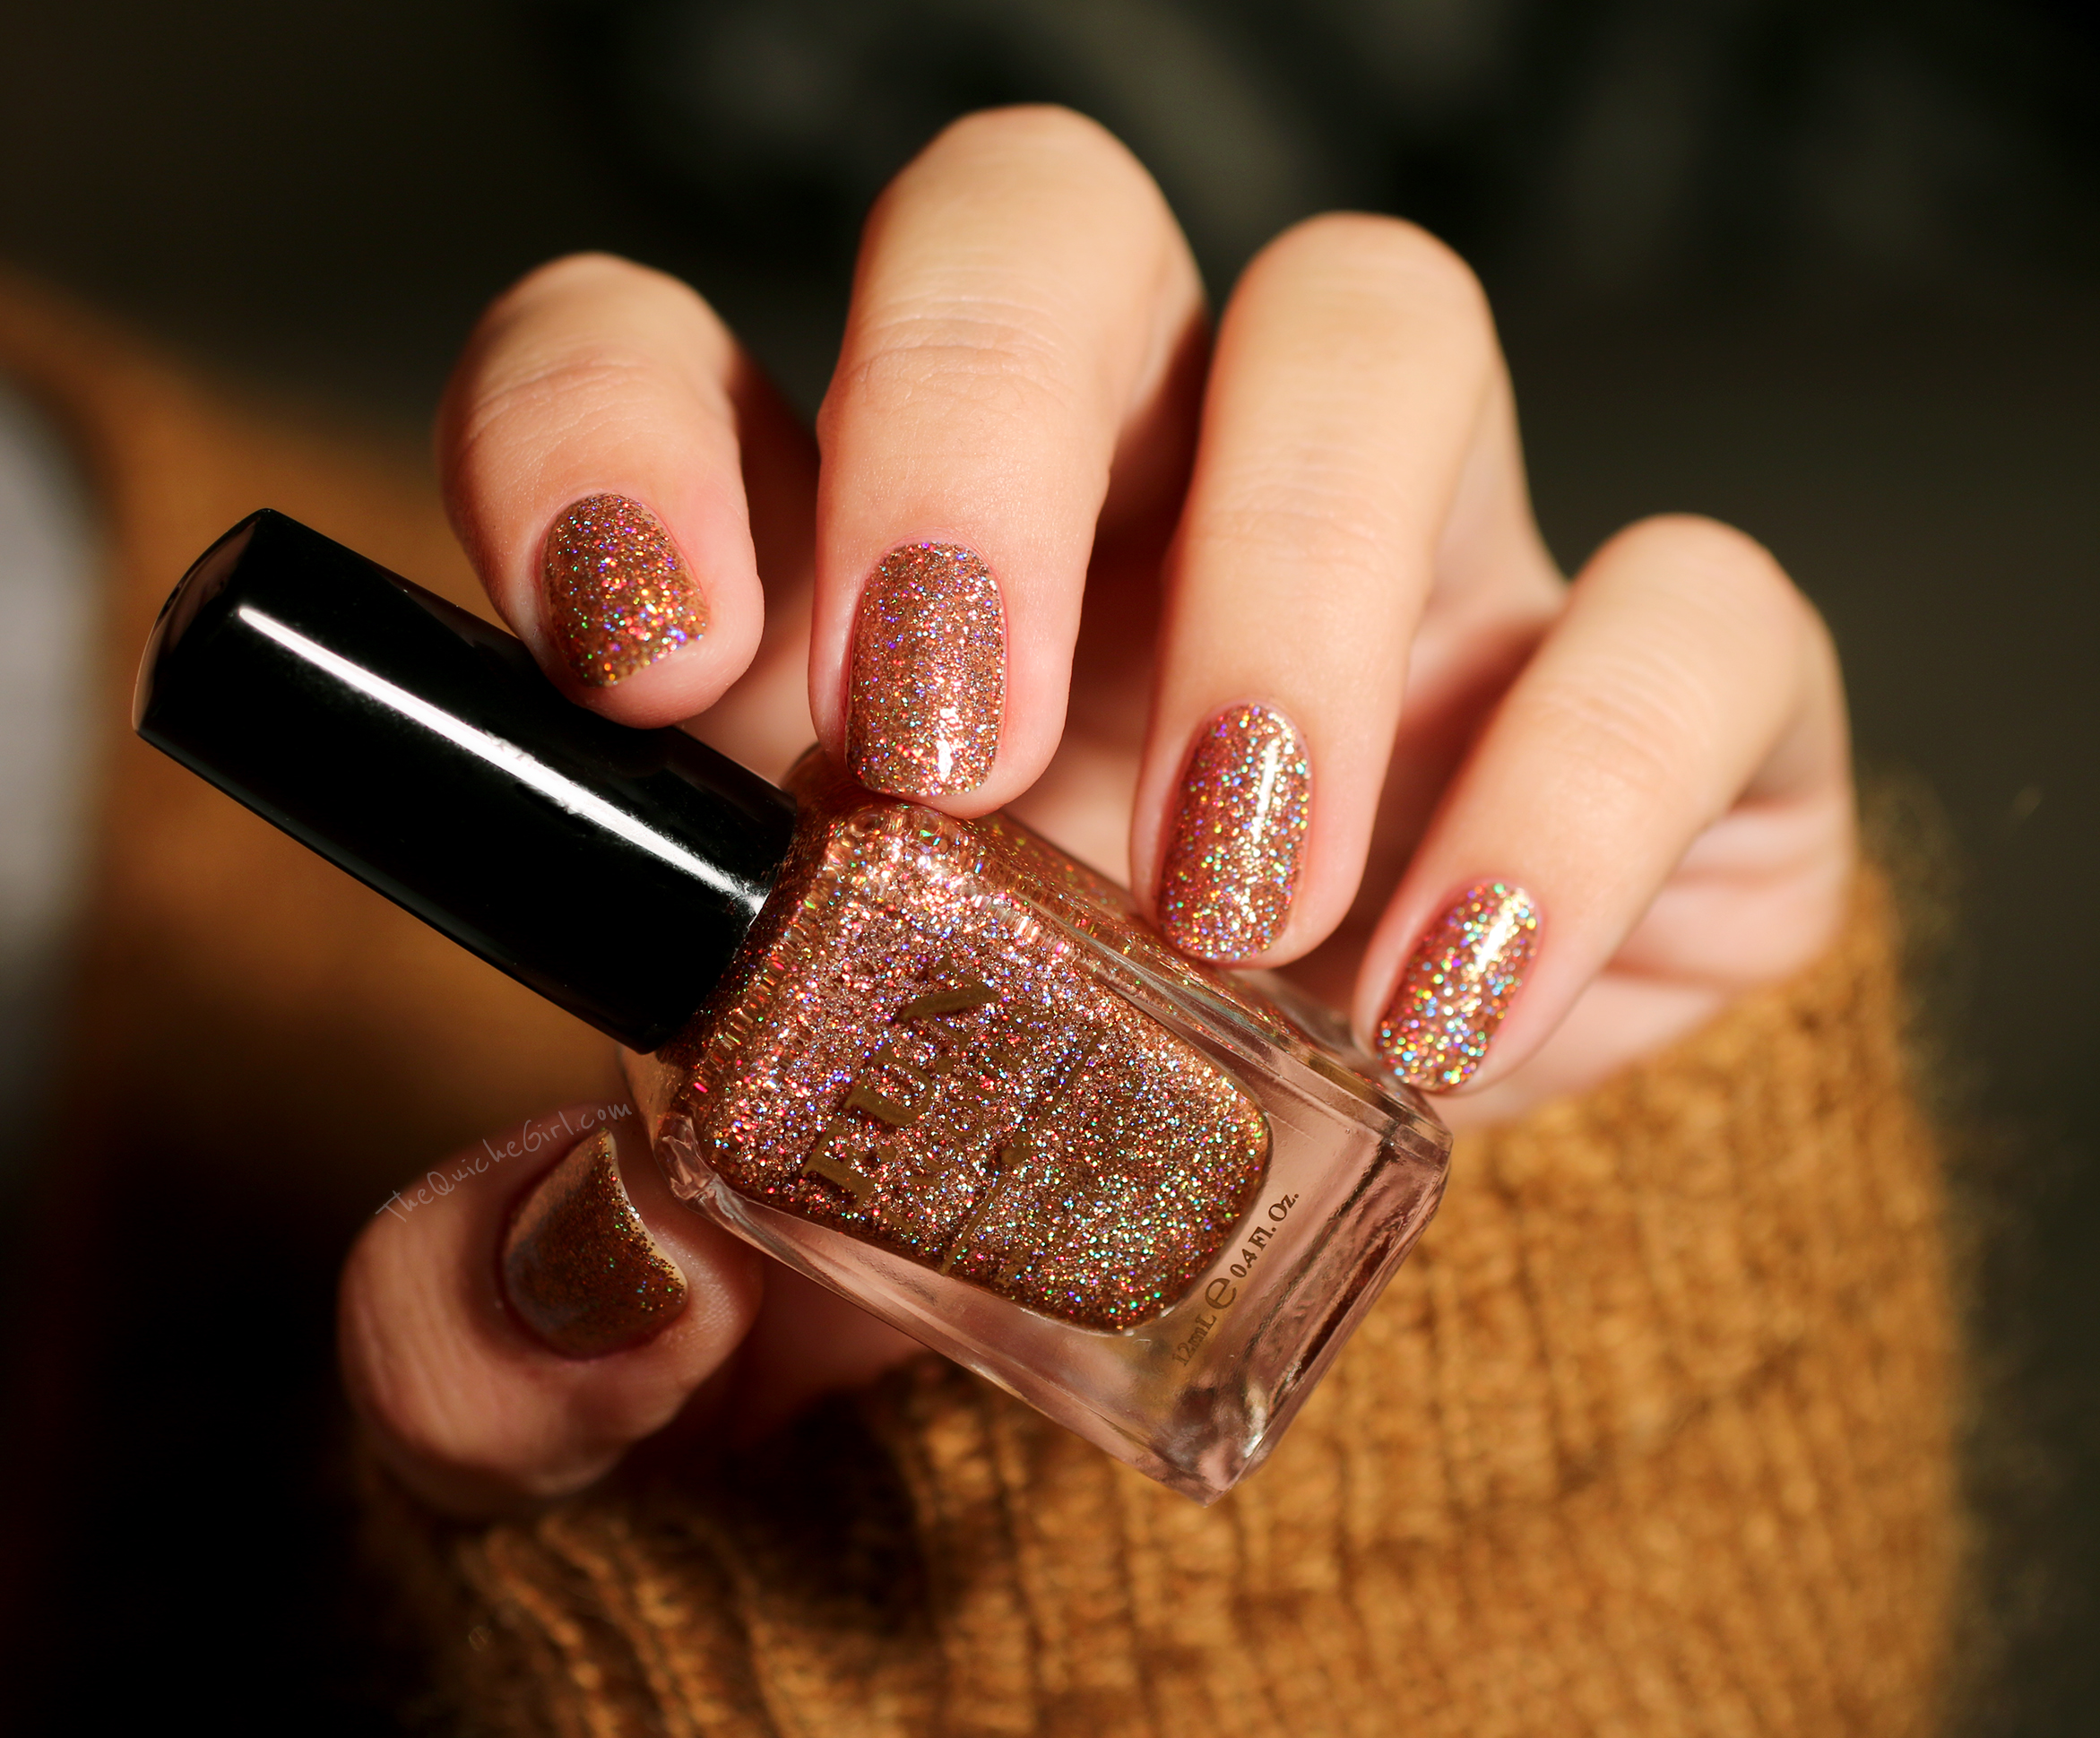 royal chapel, fun lacquer, glitter, packaging, quichegirl